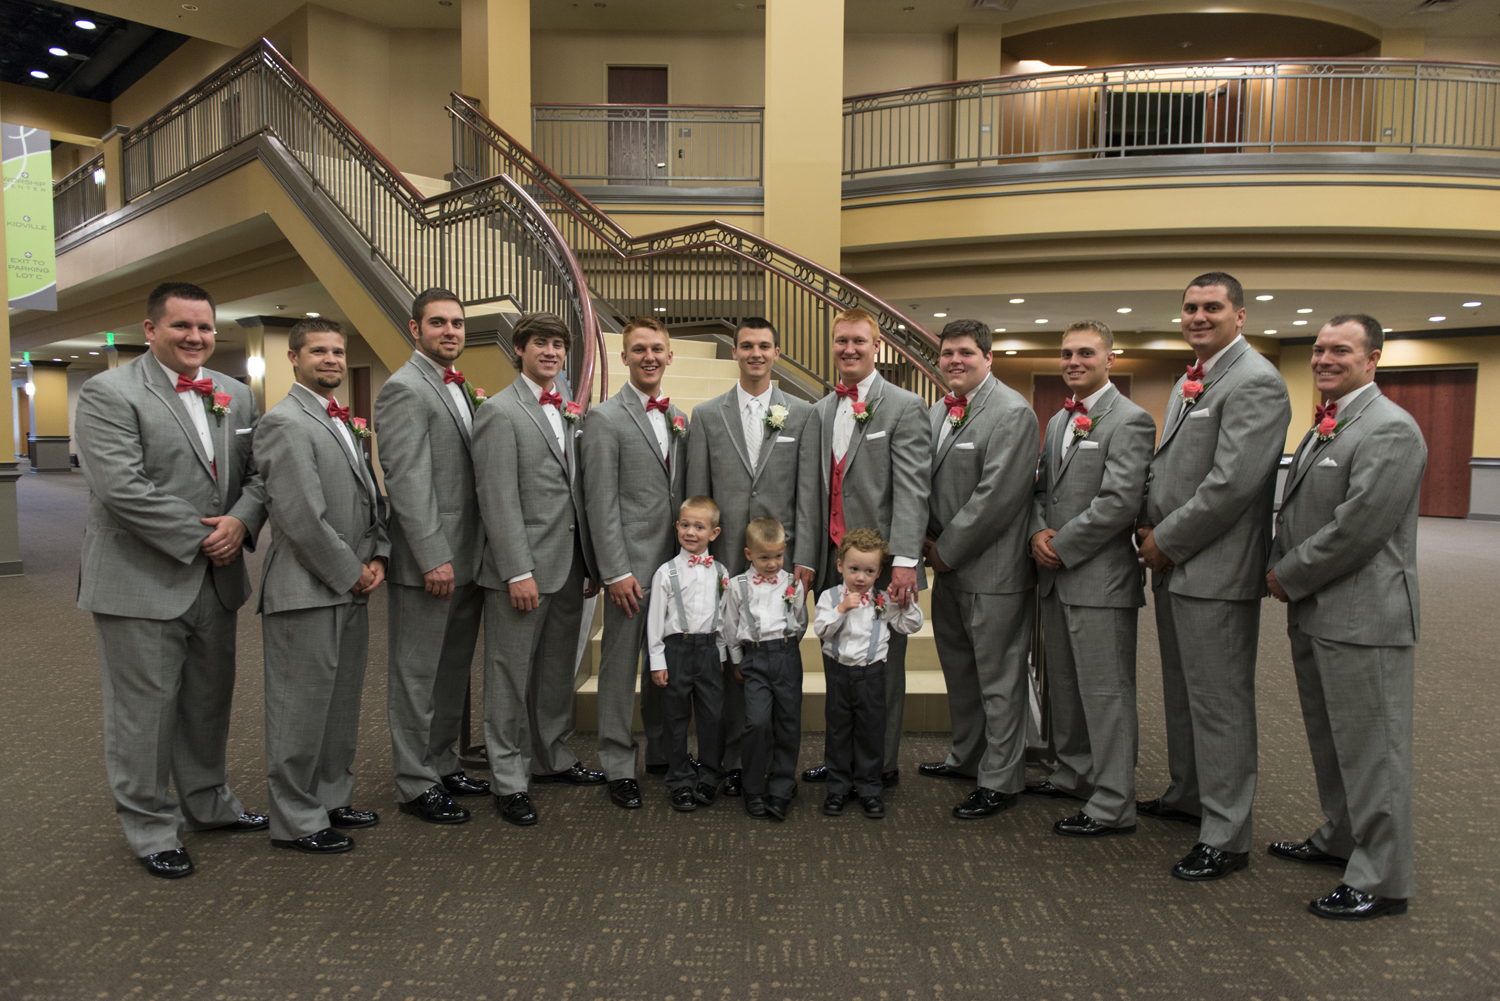 Groomsmen in gray suits and pink bow ties at Liberty Baptist Church